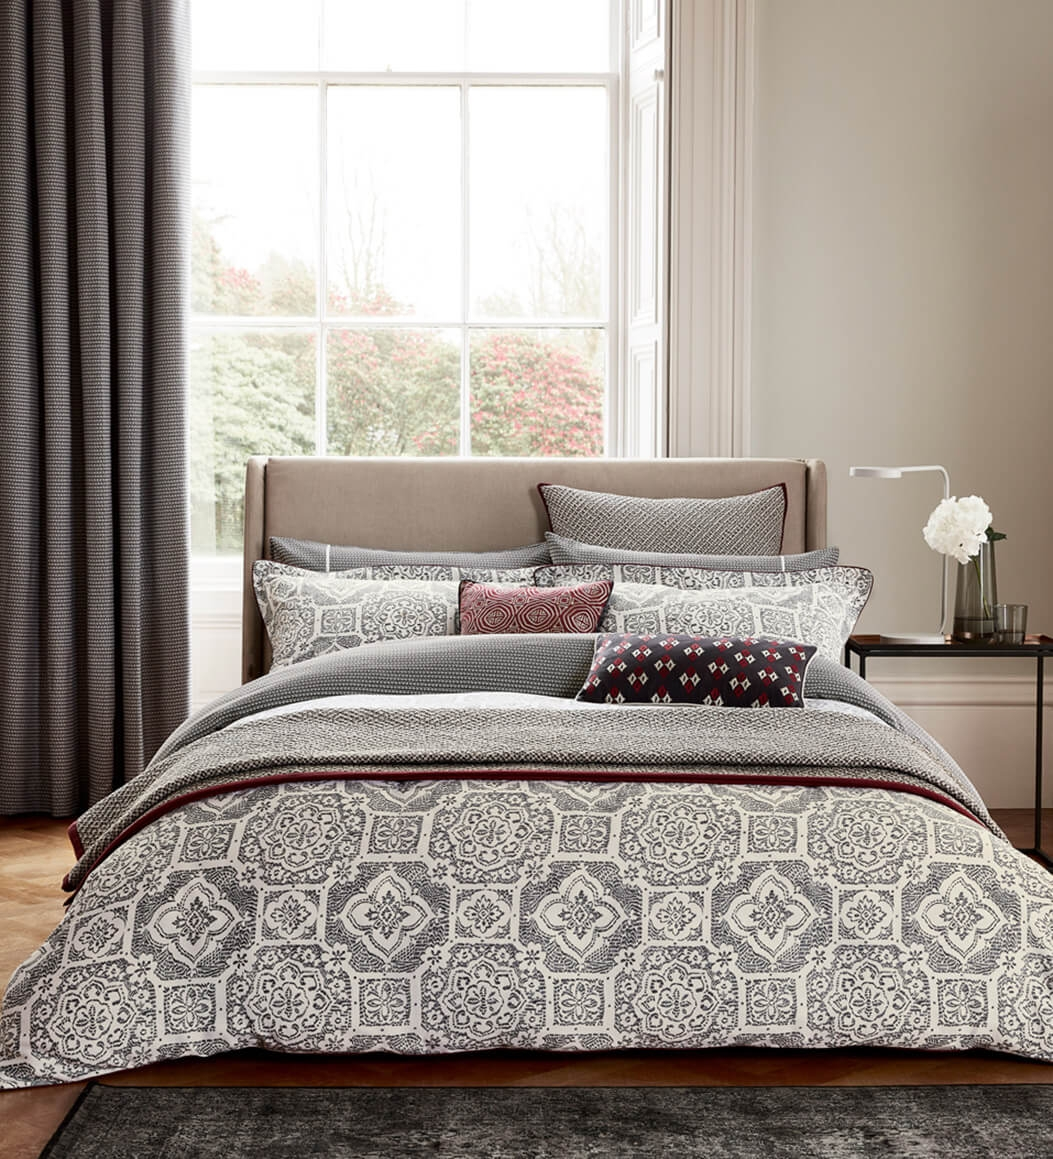 Image of Bedeck Amaya Duvet Cover, Double, Charcoal